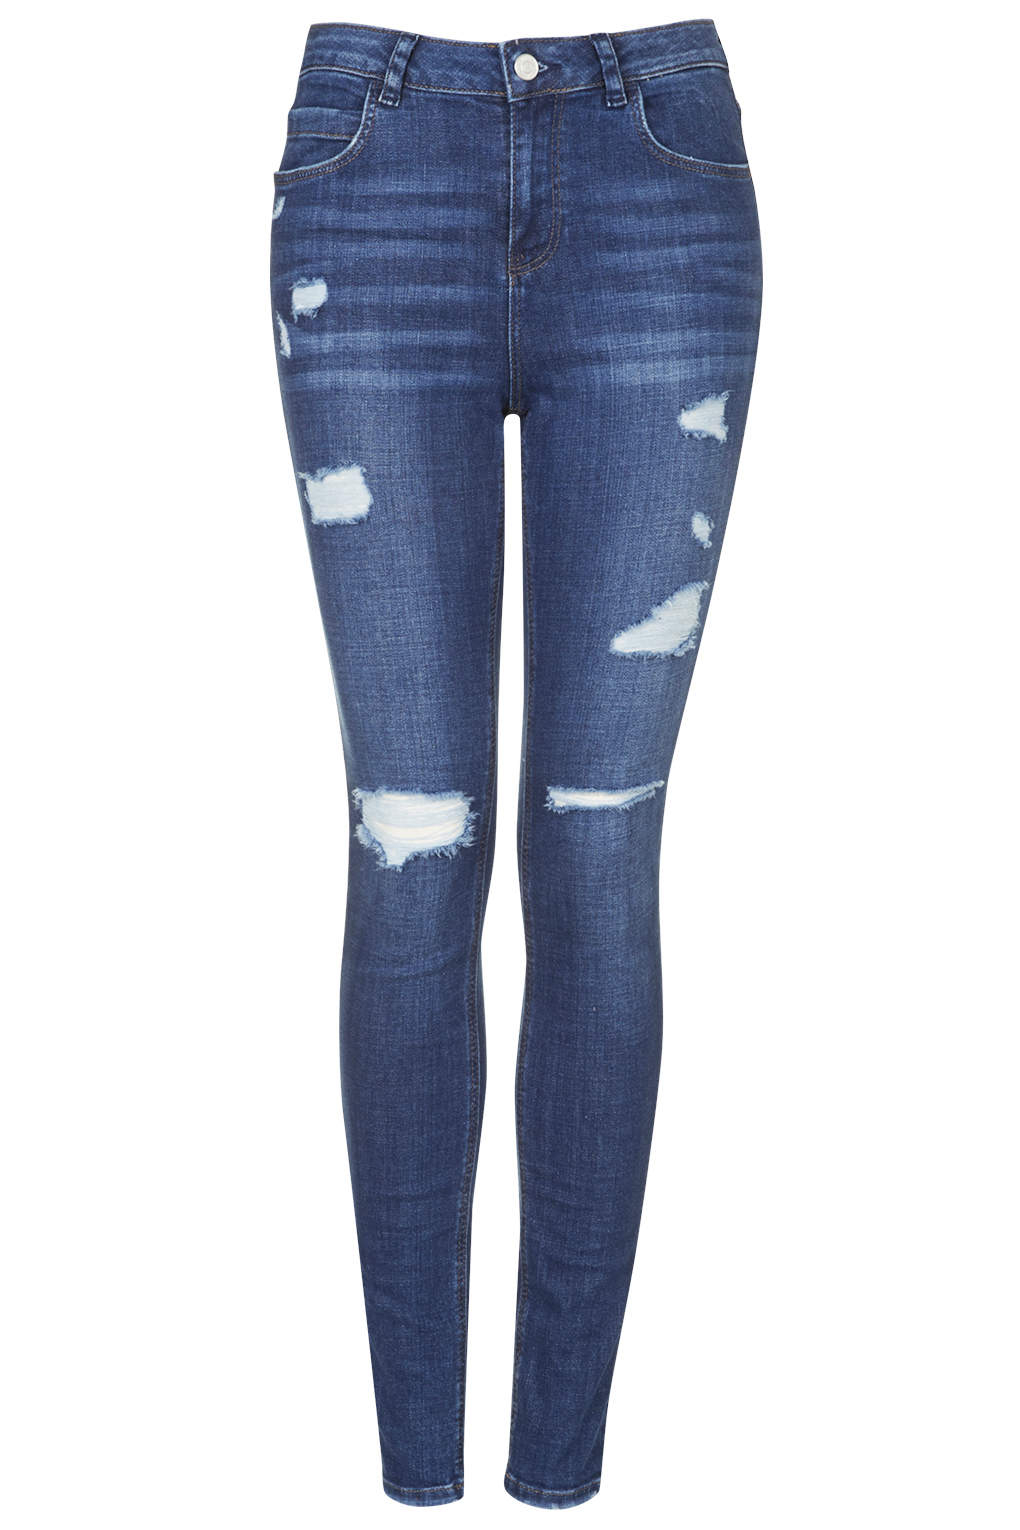 Topshop moto authentic ripped skinny jeans in blue stone for Womens denim shirts topshop